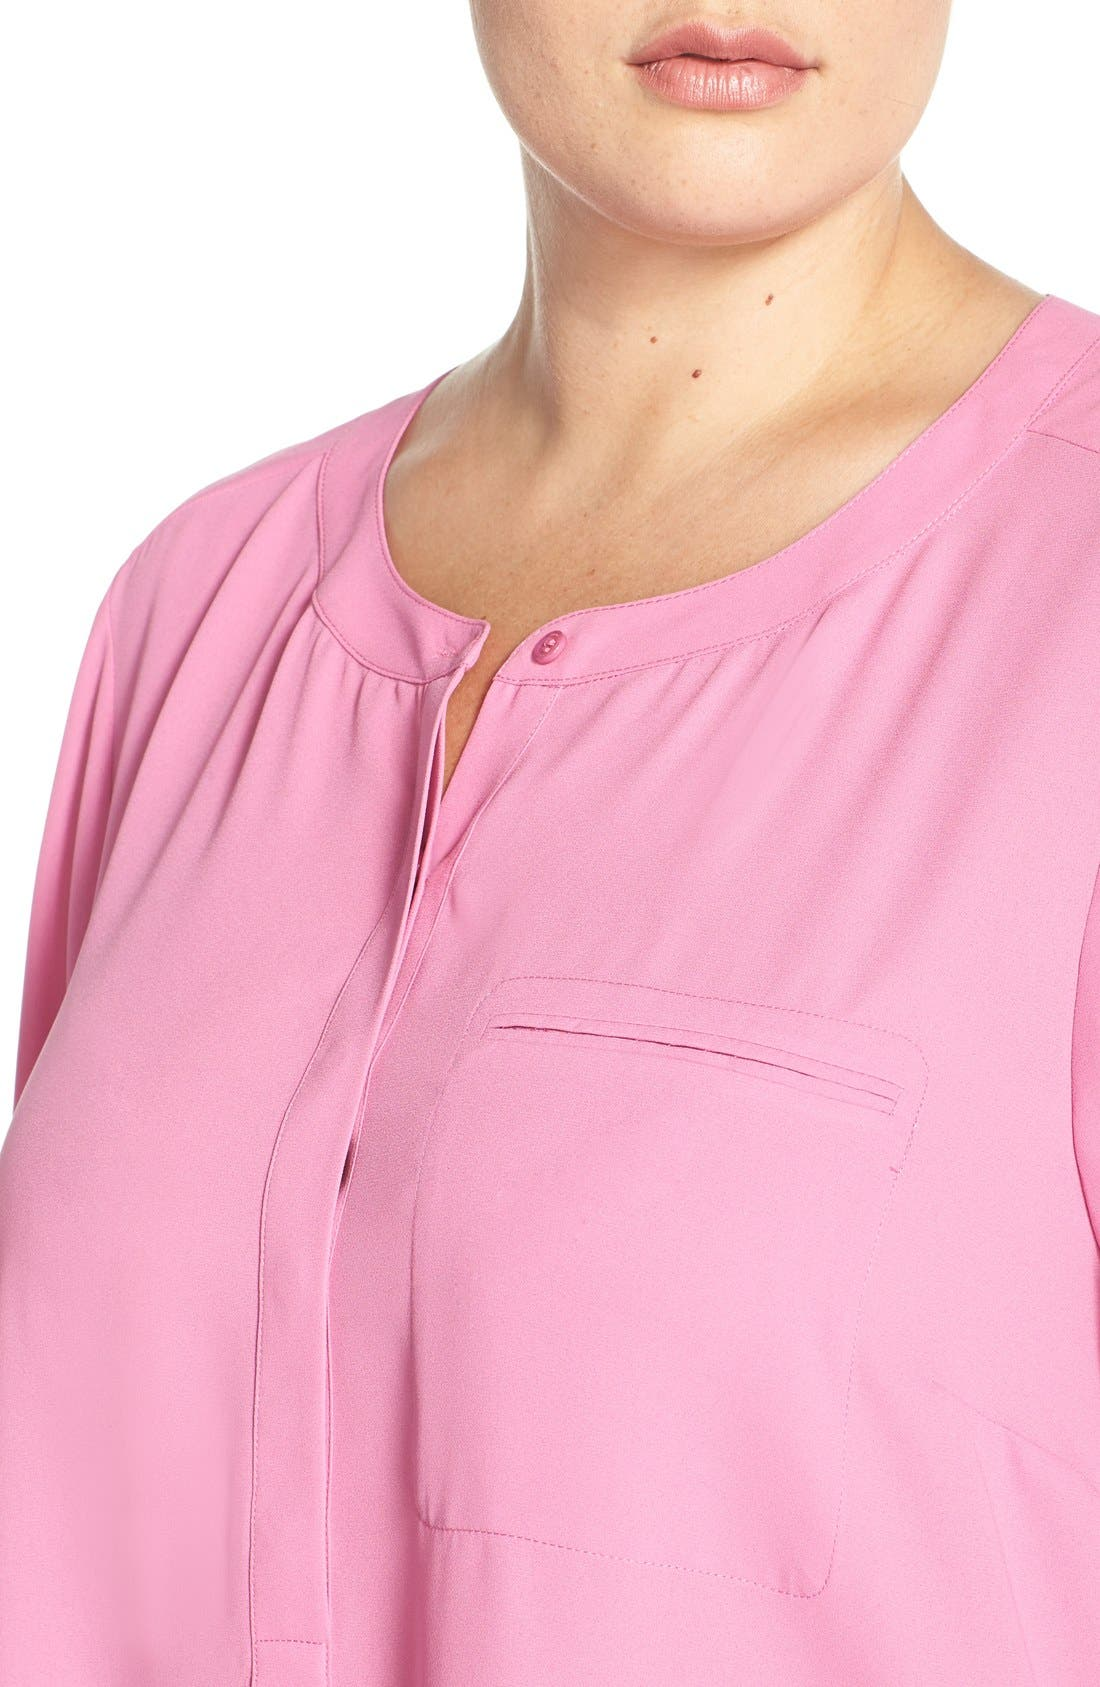 Henley Top,                             Alternate thumbnail 390, color,